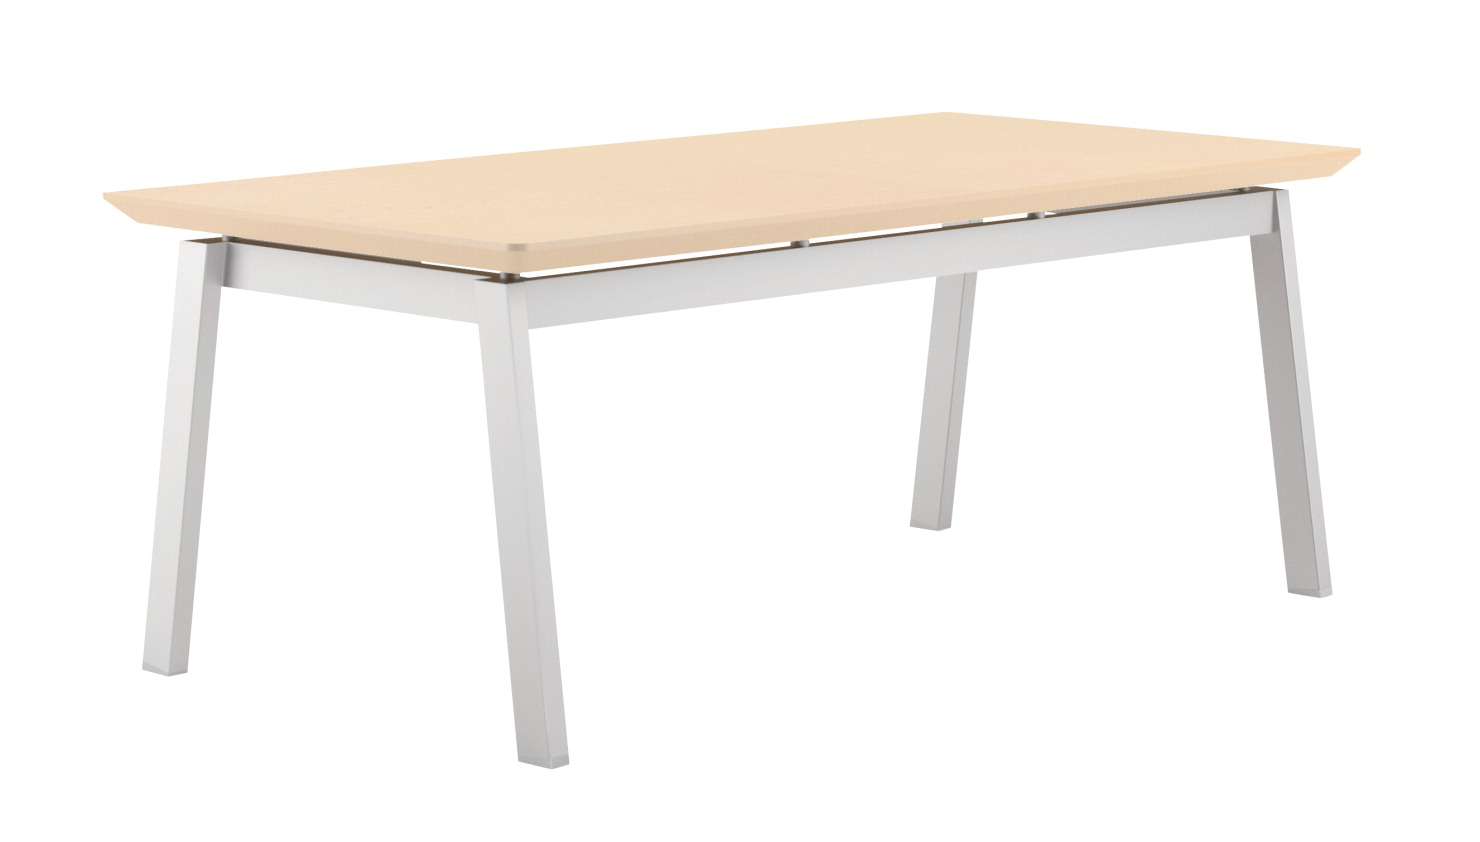 Lesro Newport 4 Legged Coffee Table 40 X 20 16 Inches Various Options School Specialty Canada